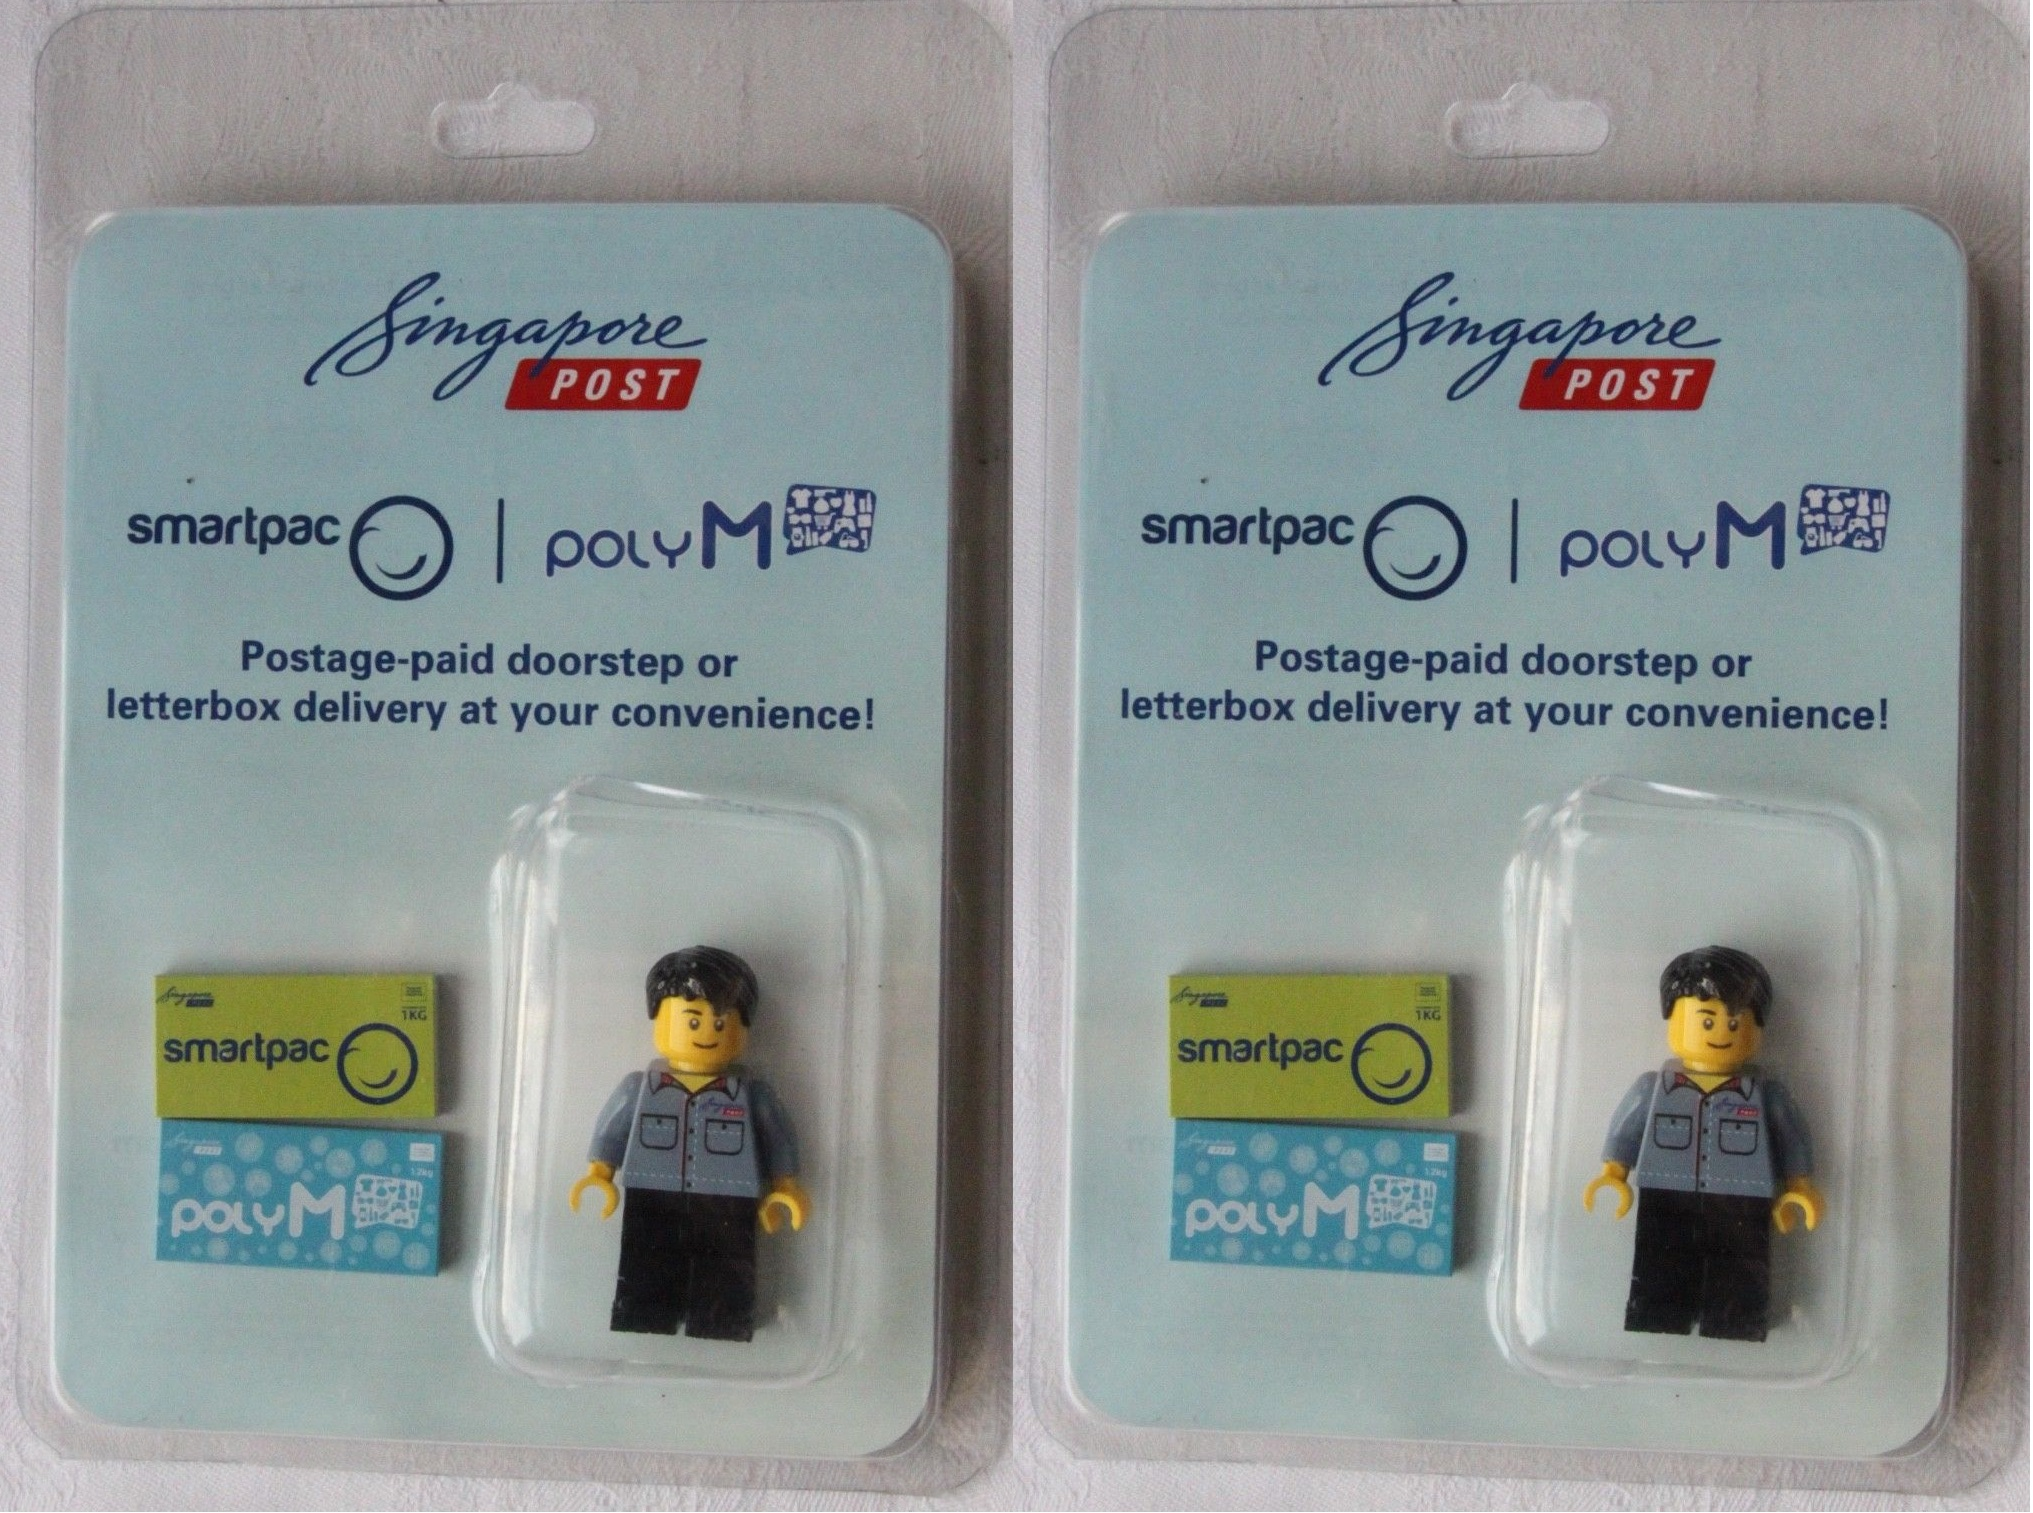 Minifigure Price Guide Look Up The Prices Of All Your Favorite Electric Connector Holder Ebay Limited To 200 I Believe Pieces And It Looks Pretty Sweet Another One That Would Have Like Picked See Here On